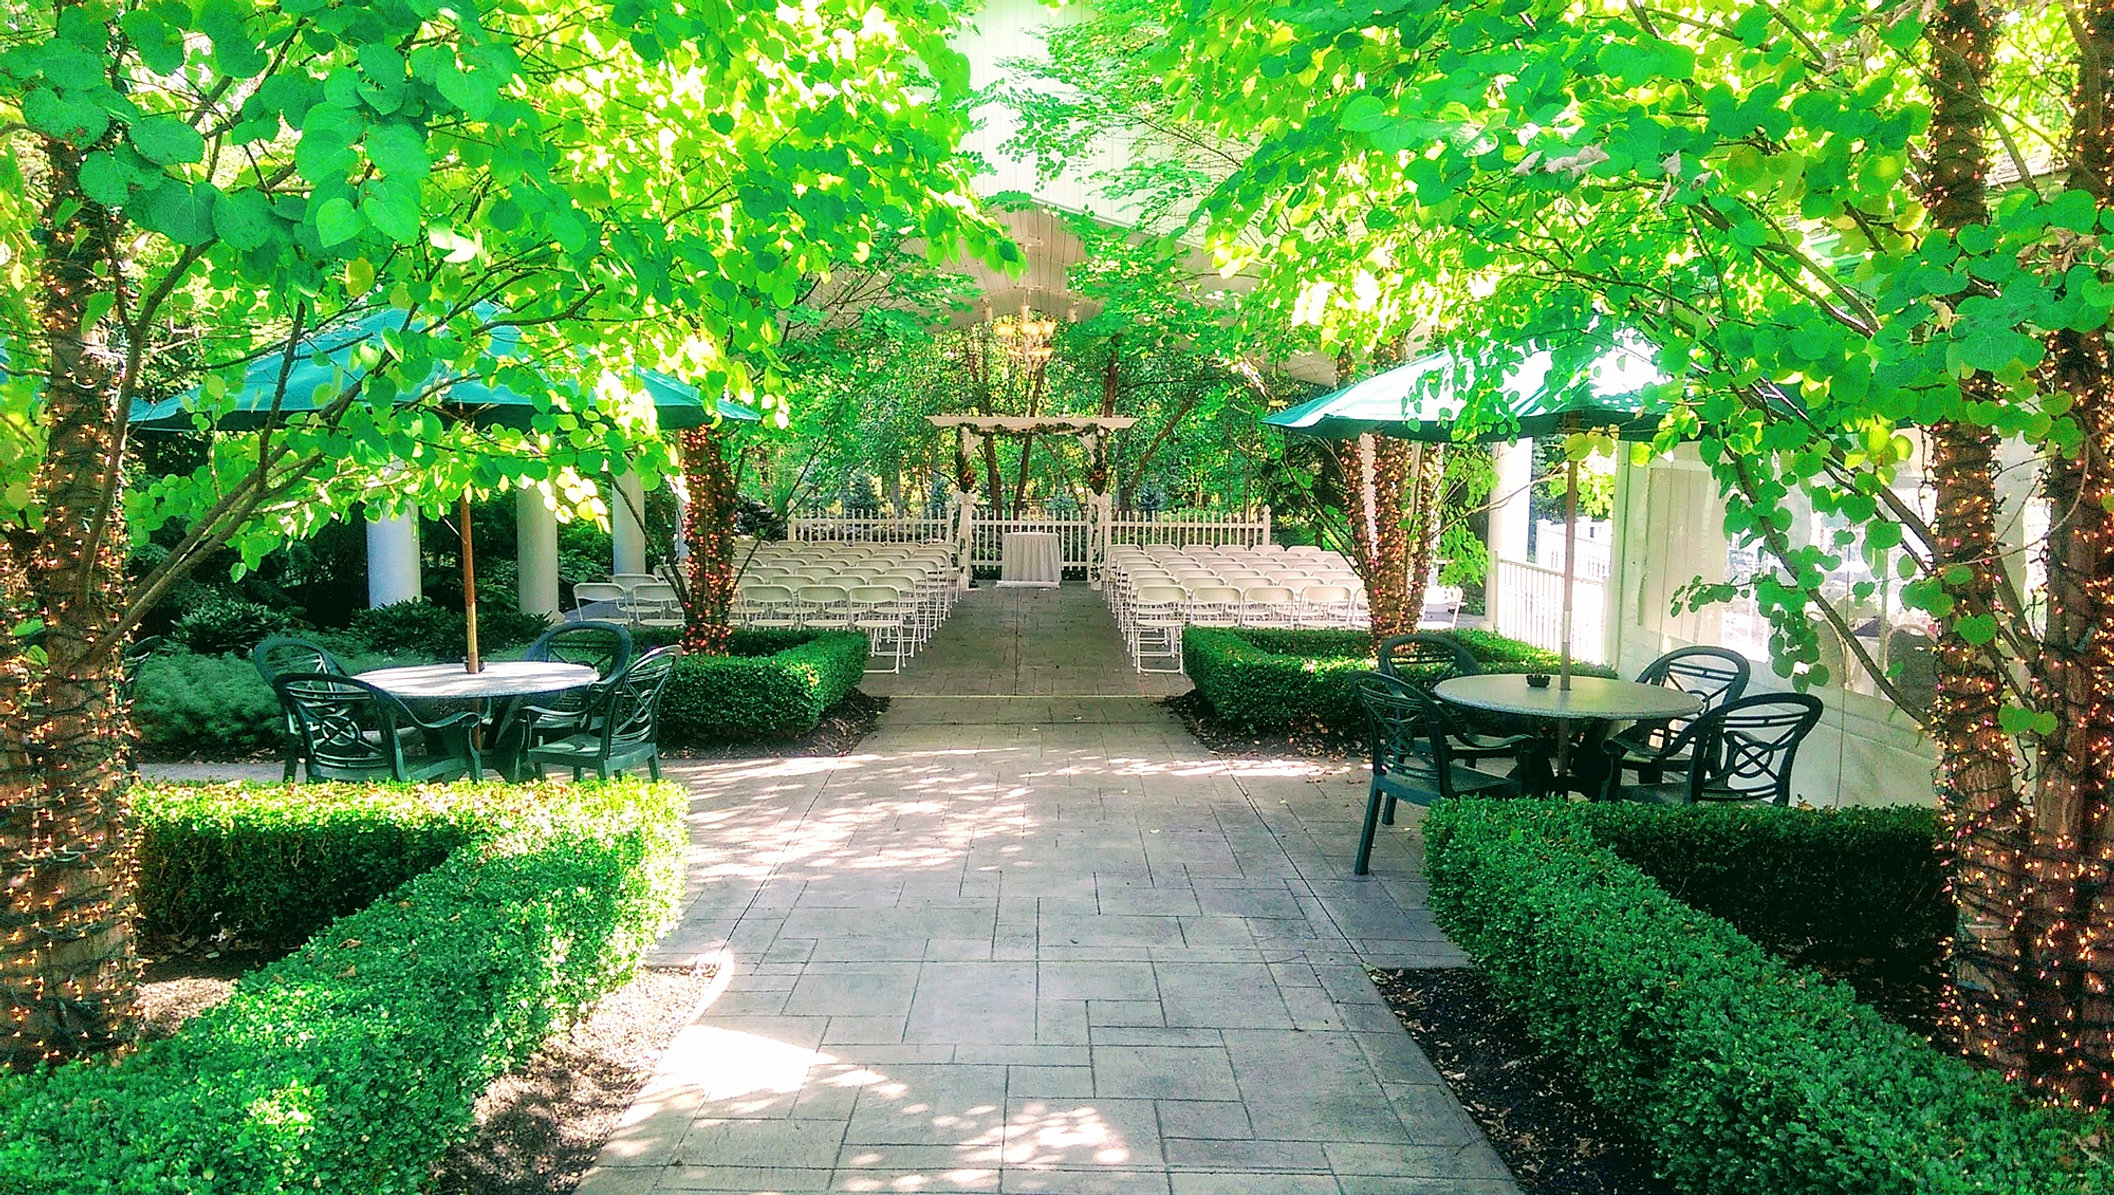 Wedding and event venue buffalo ny kloc 39 s grove - The wedding garden carbondale il ...